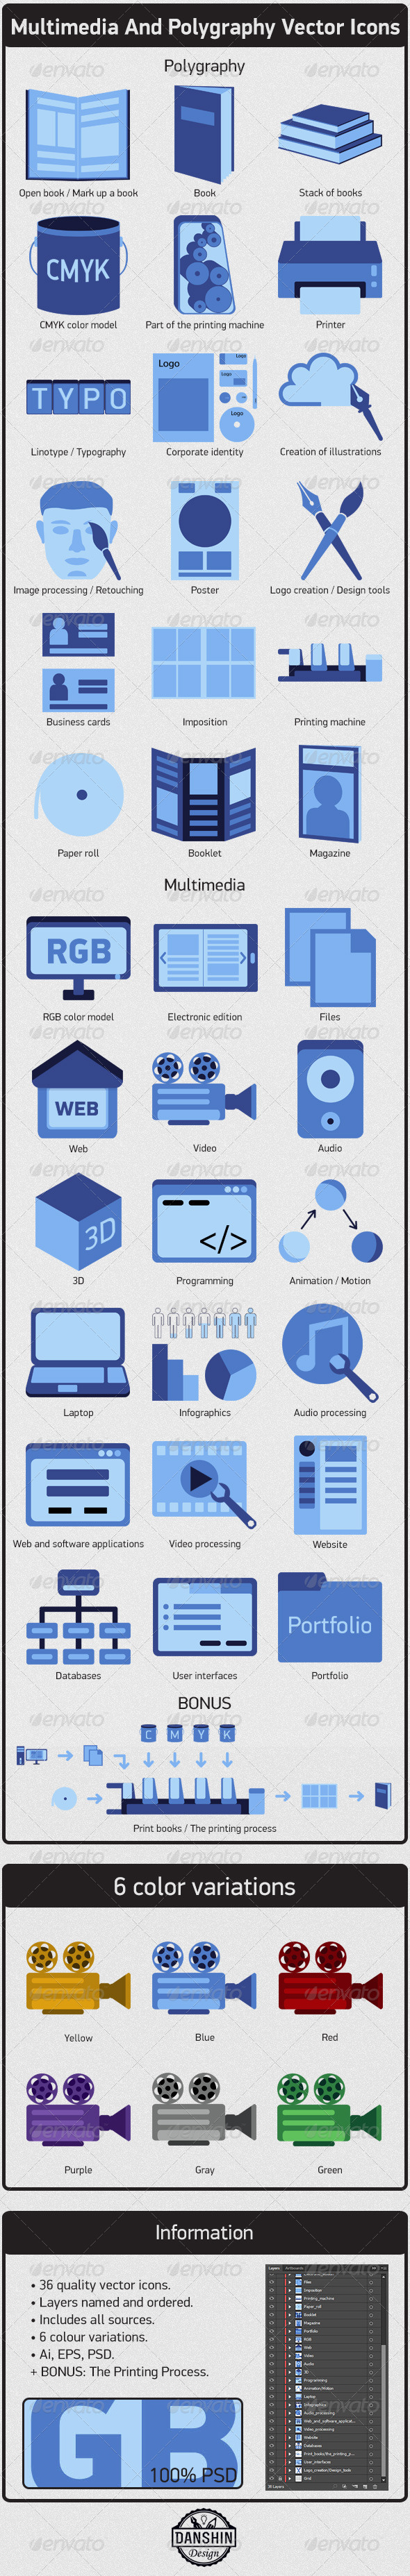 Multimedia And Polygraphy Vector Icons - Icons